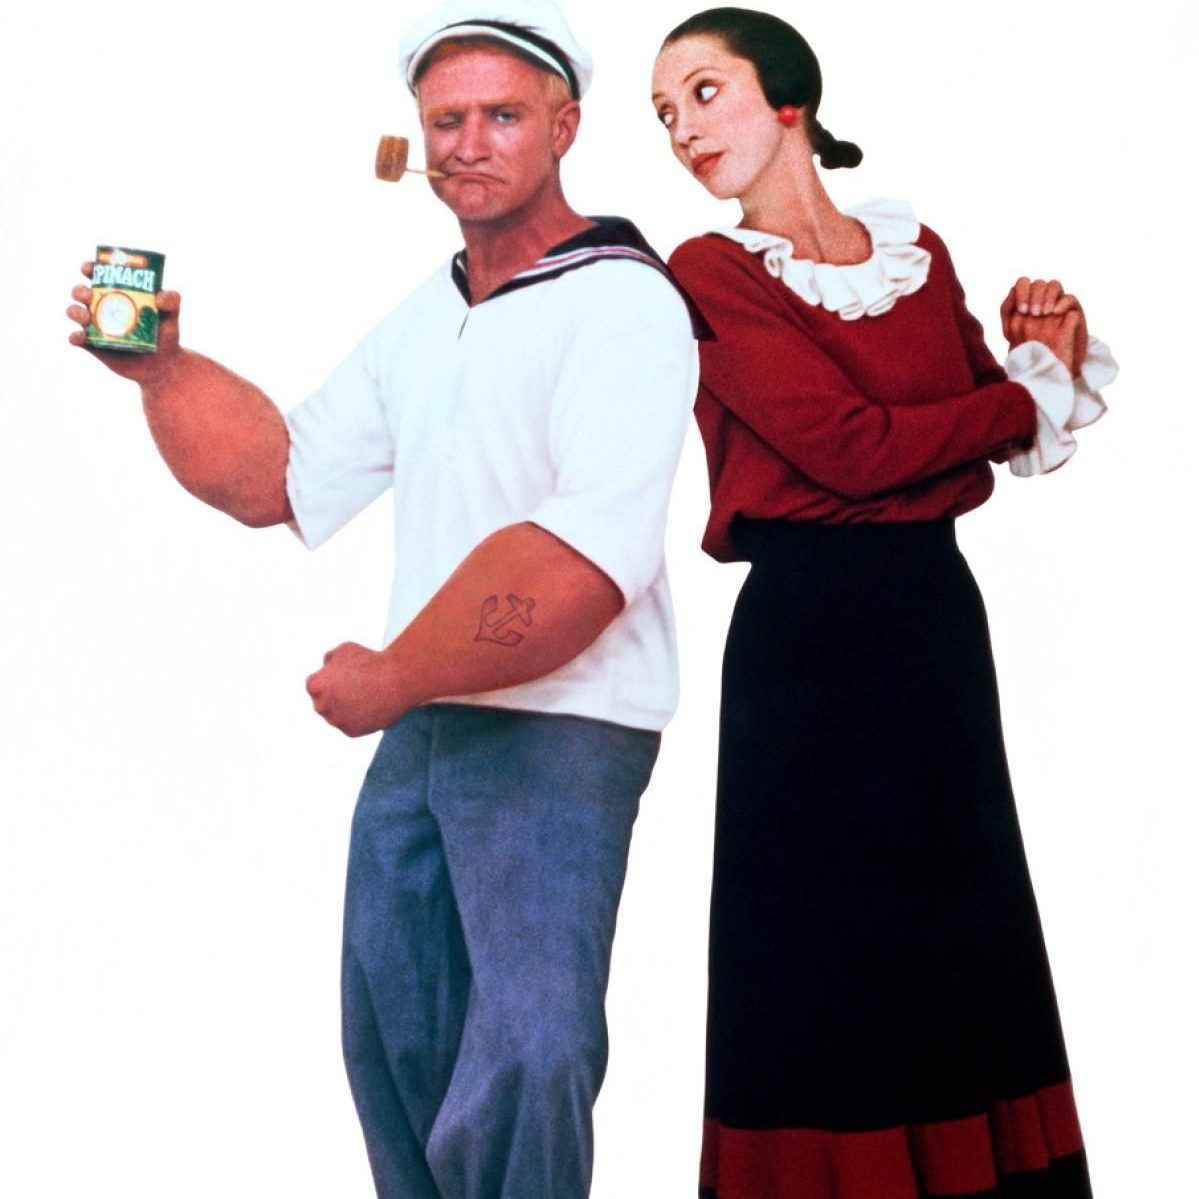 f9e478ac5e952b3159046d28c748d551 e1575034265383 20 Facts About 1980's Popeye That Taste Even Better Than Spinach